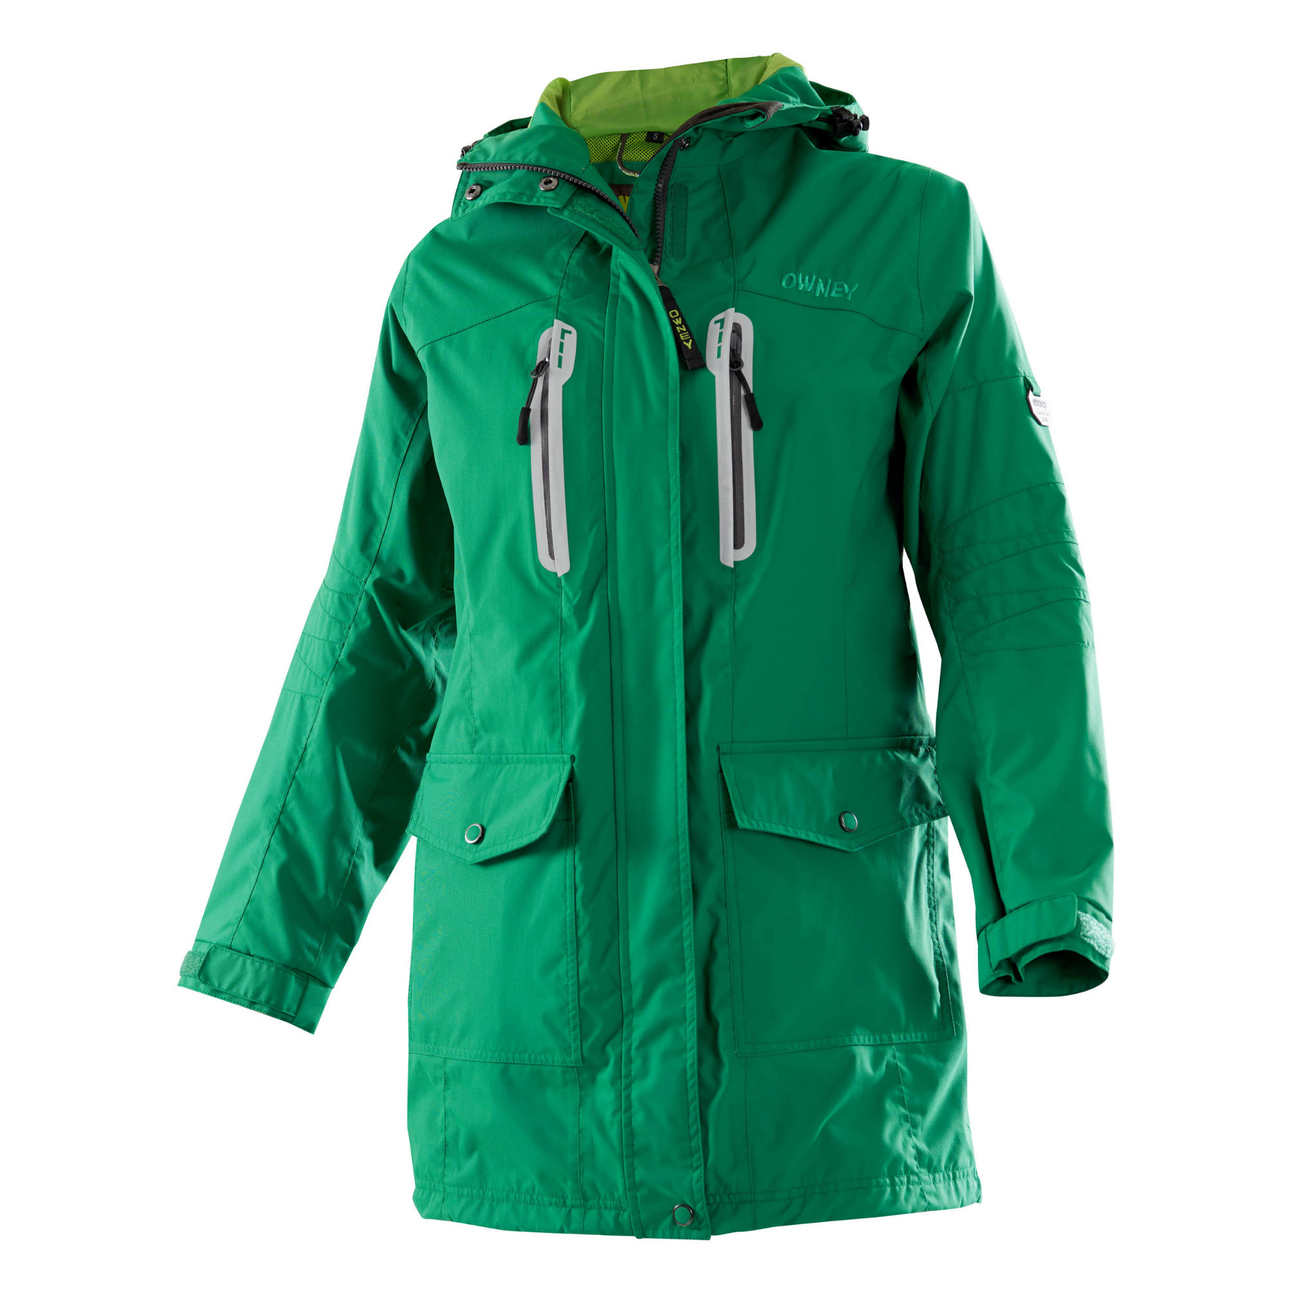 Owney Outdoor Damenparka Arnauti, Bild 15